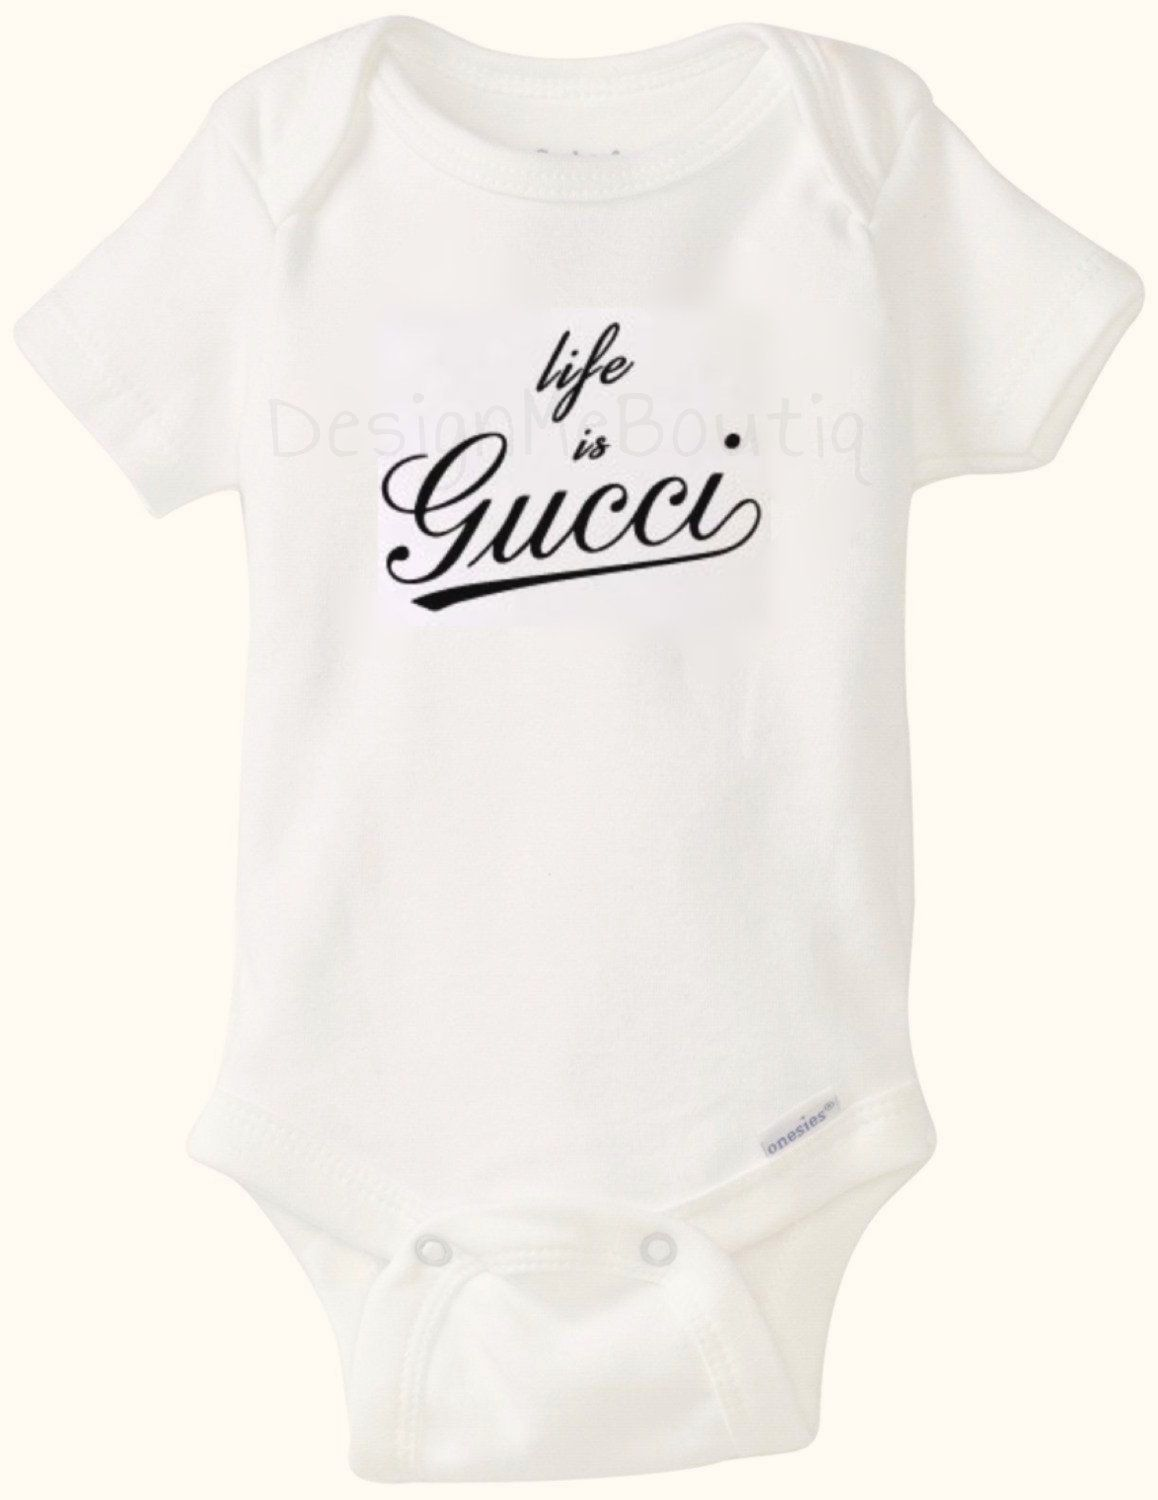 fc57cf7b4 Life is Gucci inspired Baby Onesie Onesies Gerber Baby Shower Gift Infant  bodysuit fashion vogue baby unisex boy girl designer GG hot new